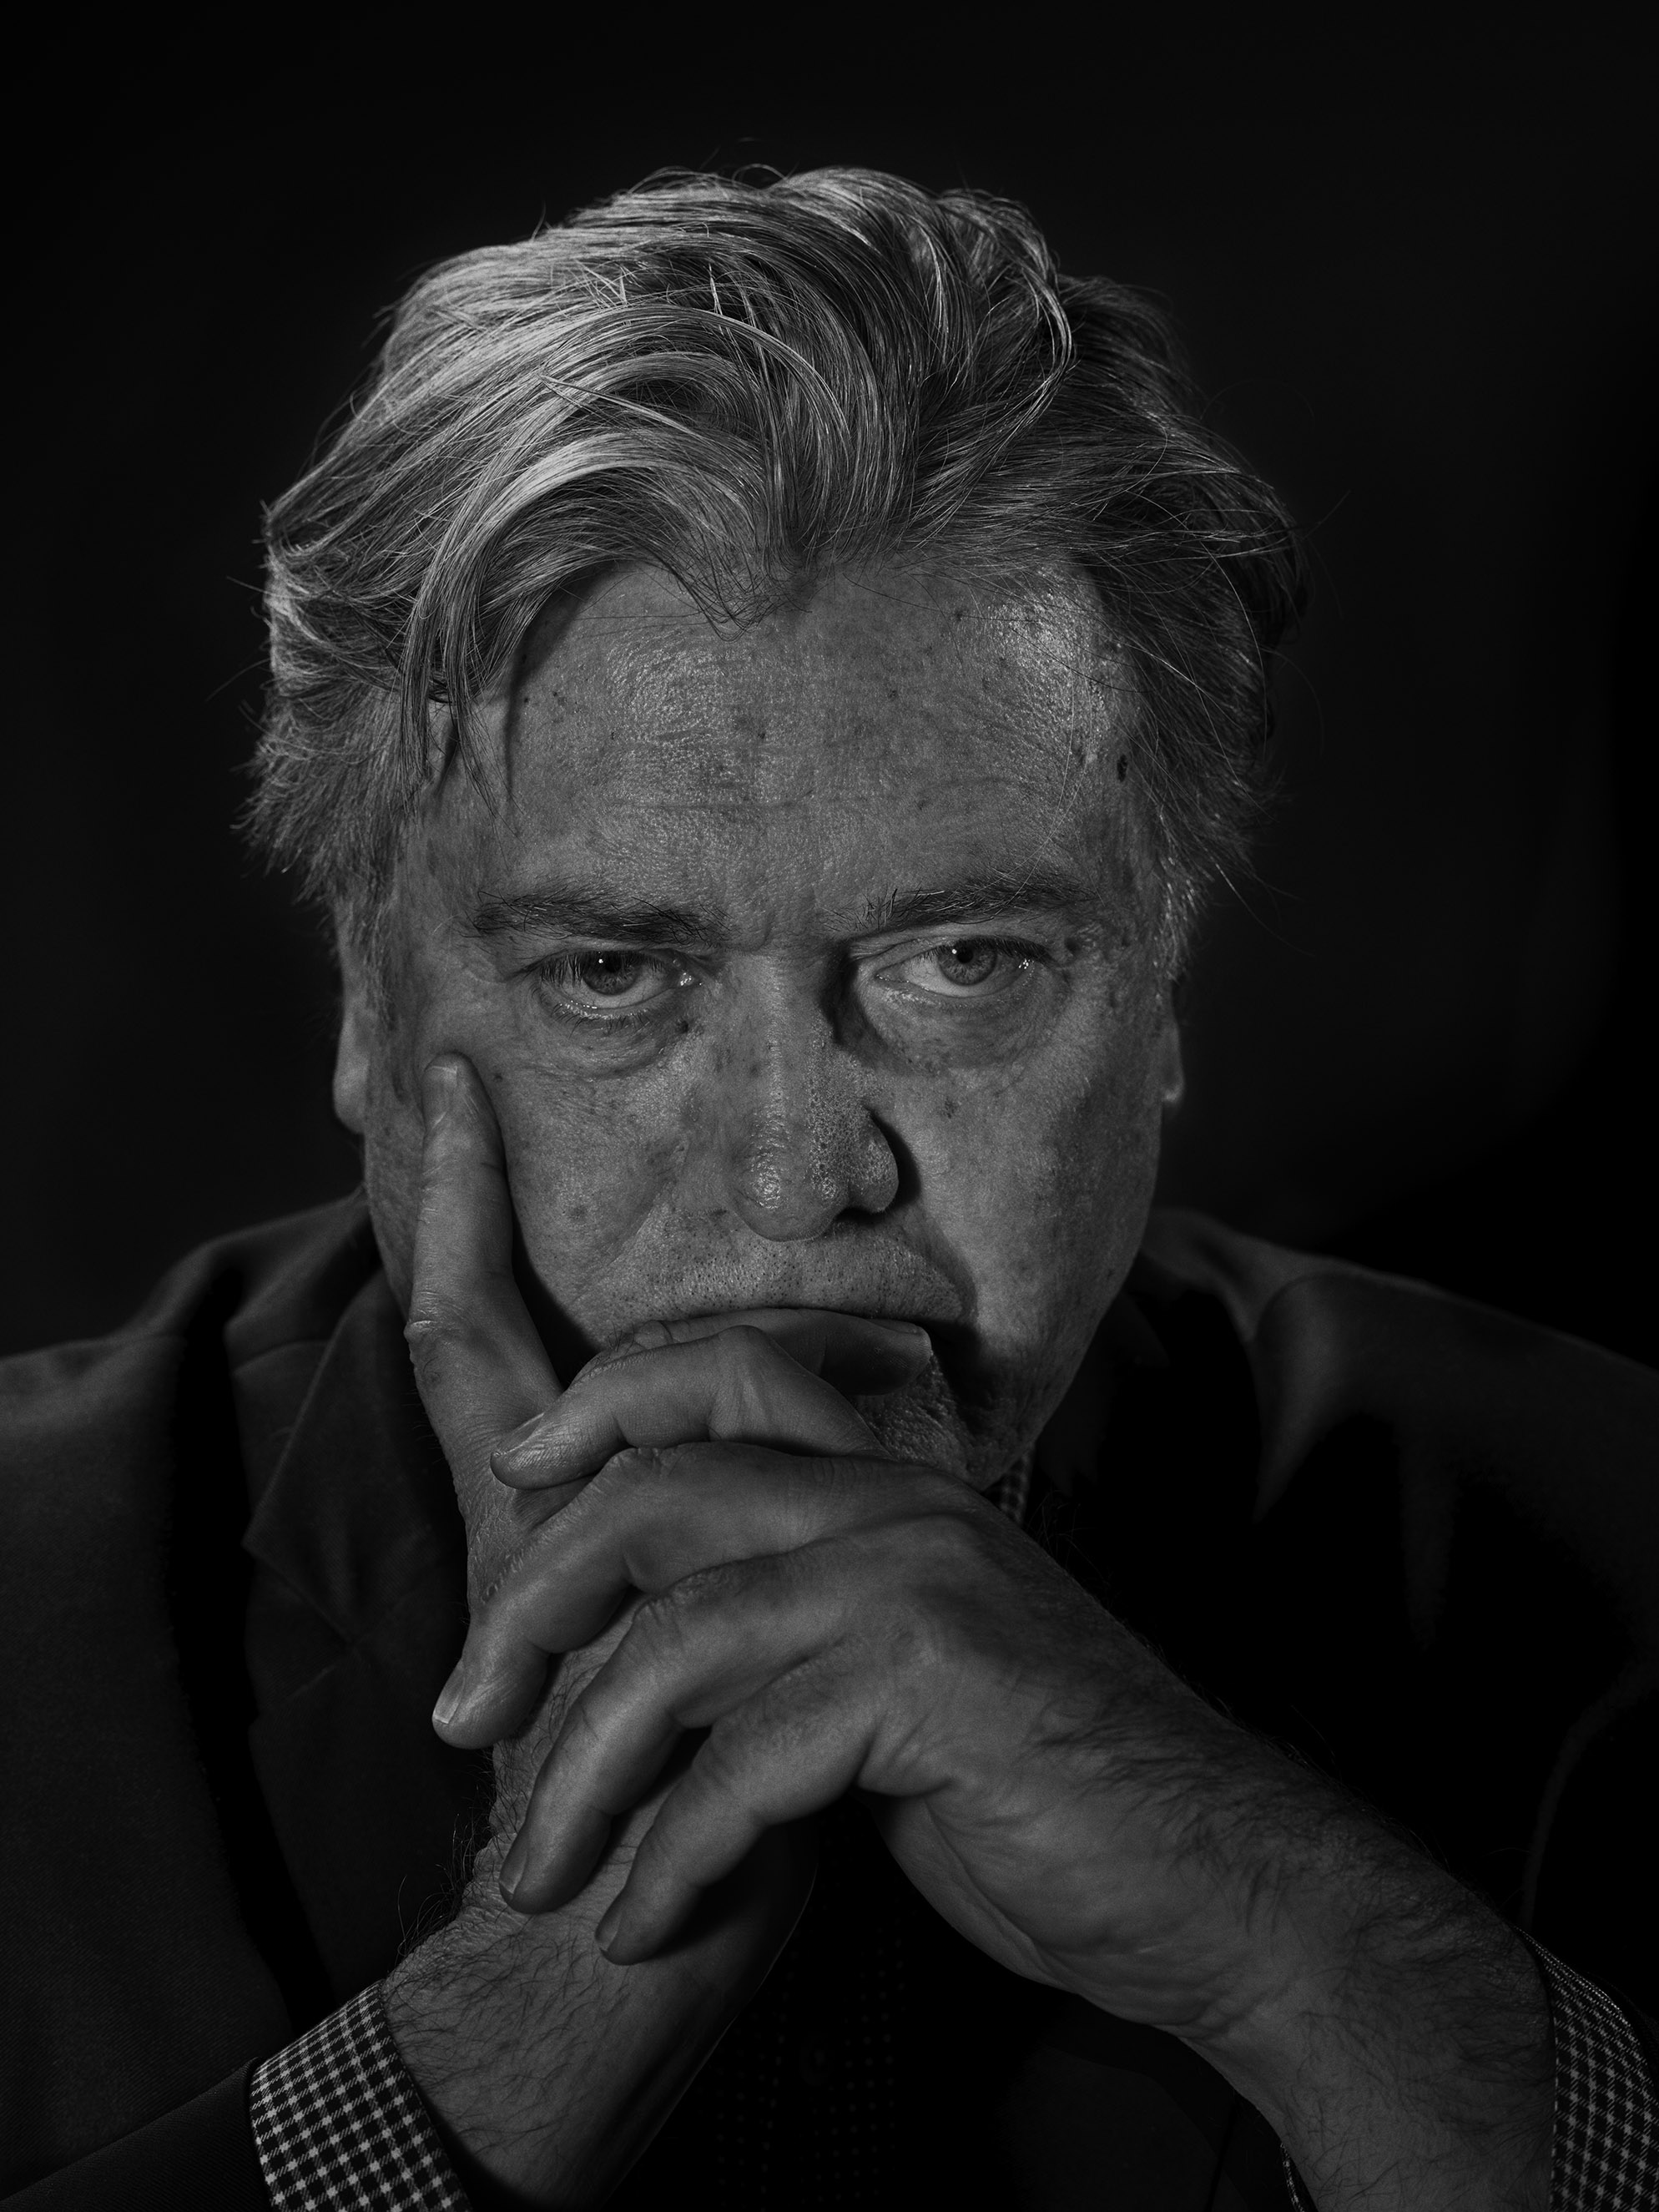 The Rabble-Rouser                               The former head of Breitbart, Stephen Bannon has pushed for a darker, more divisive populism, publishing articles that stirred racial animus. He will be a senior adviser at the White House.